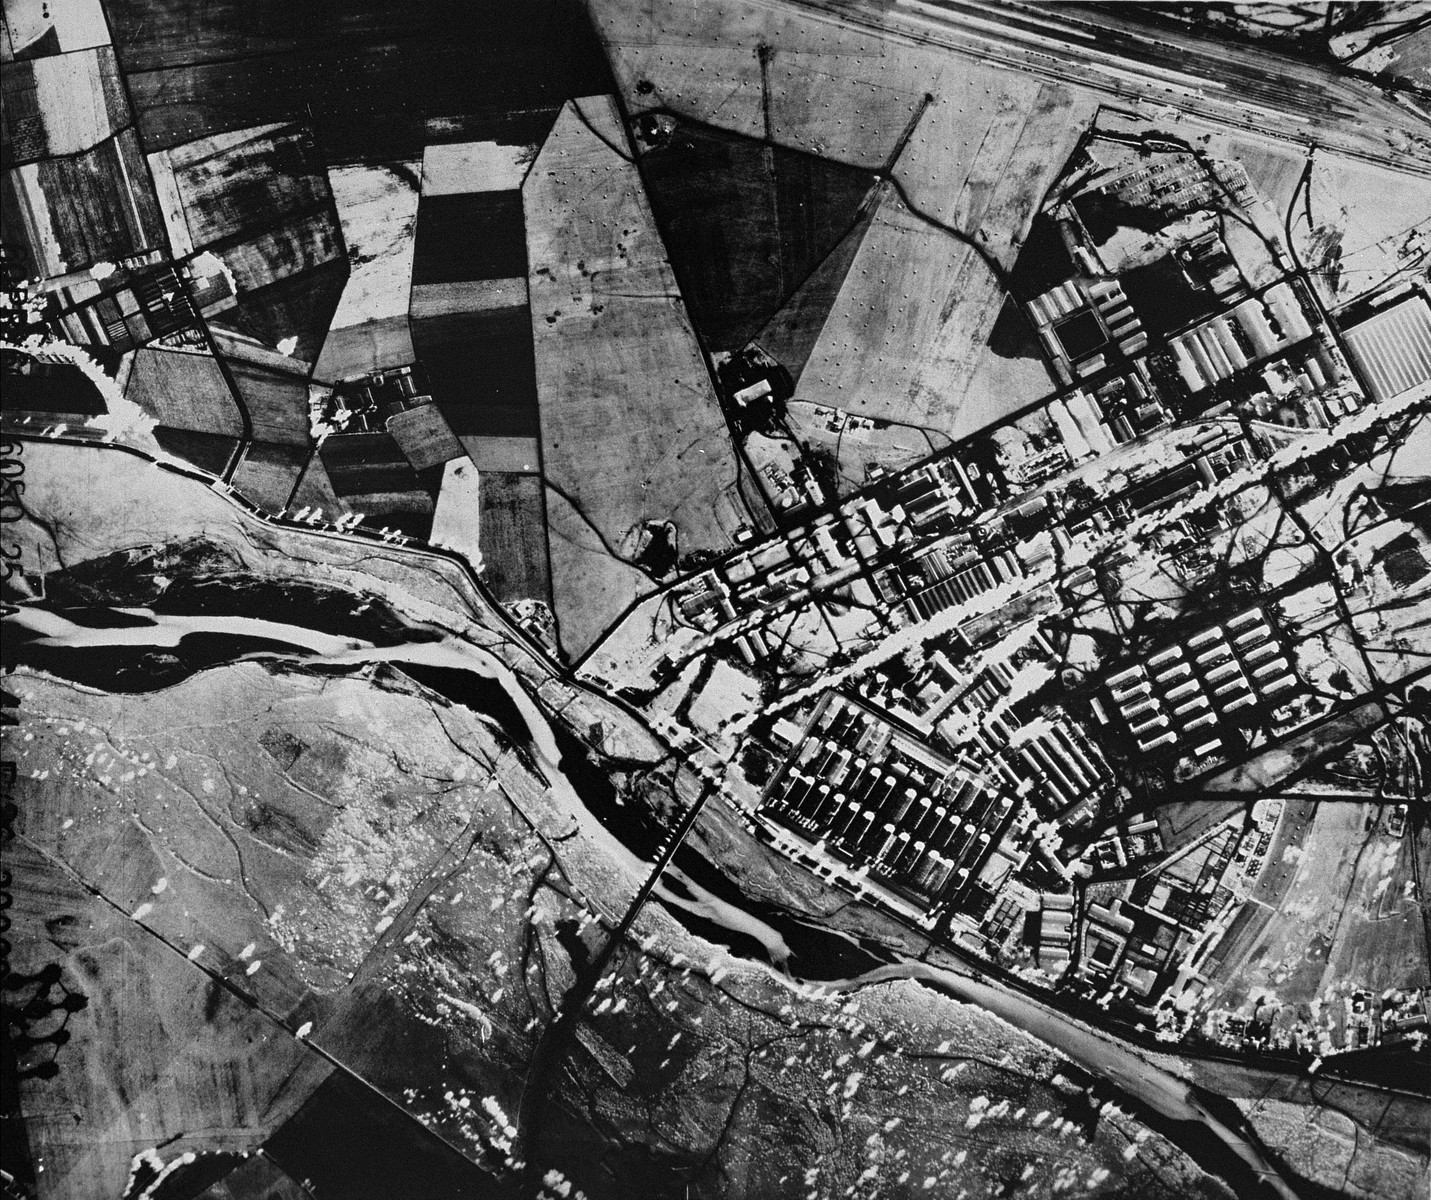 An aerial reconnaissance photograph of Auschwitz I showing the administrative area as well as a portion of the rail lines leading to the camp.